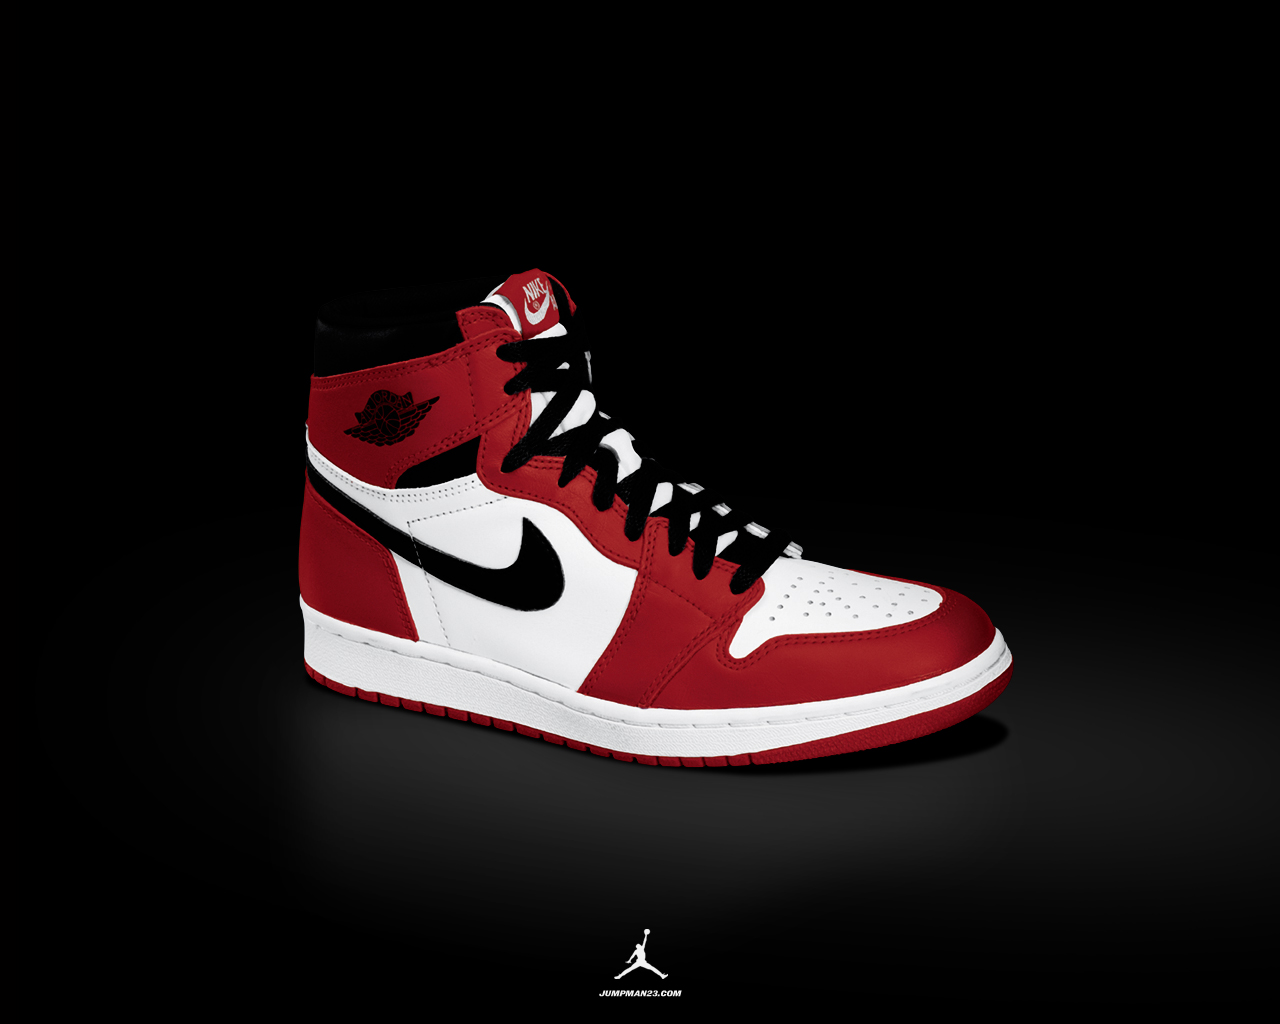 super popular a0a99 520e7 jordan  shoes  air  picture  wallaper  sneaker  sneakers  nicolas  jordans   retro. freewallpapersbasecomsportsJordan shoes desktop wallpapers624html ...